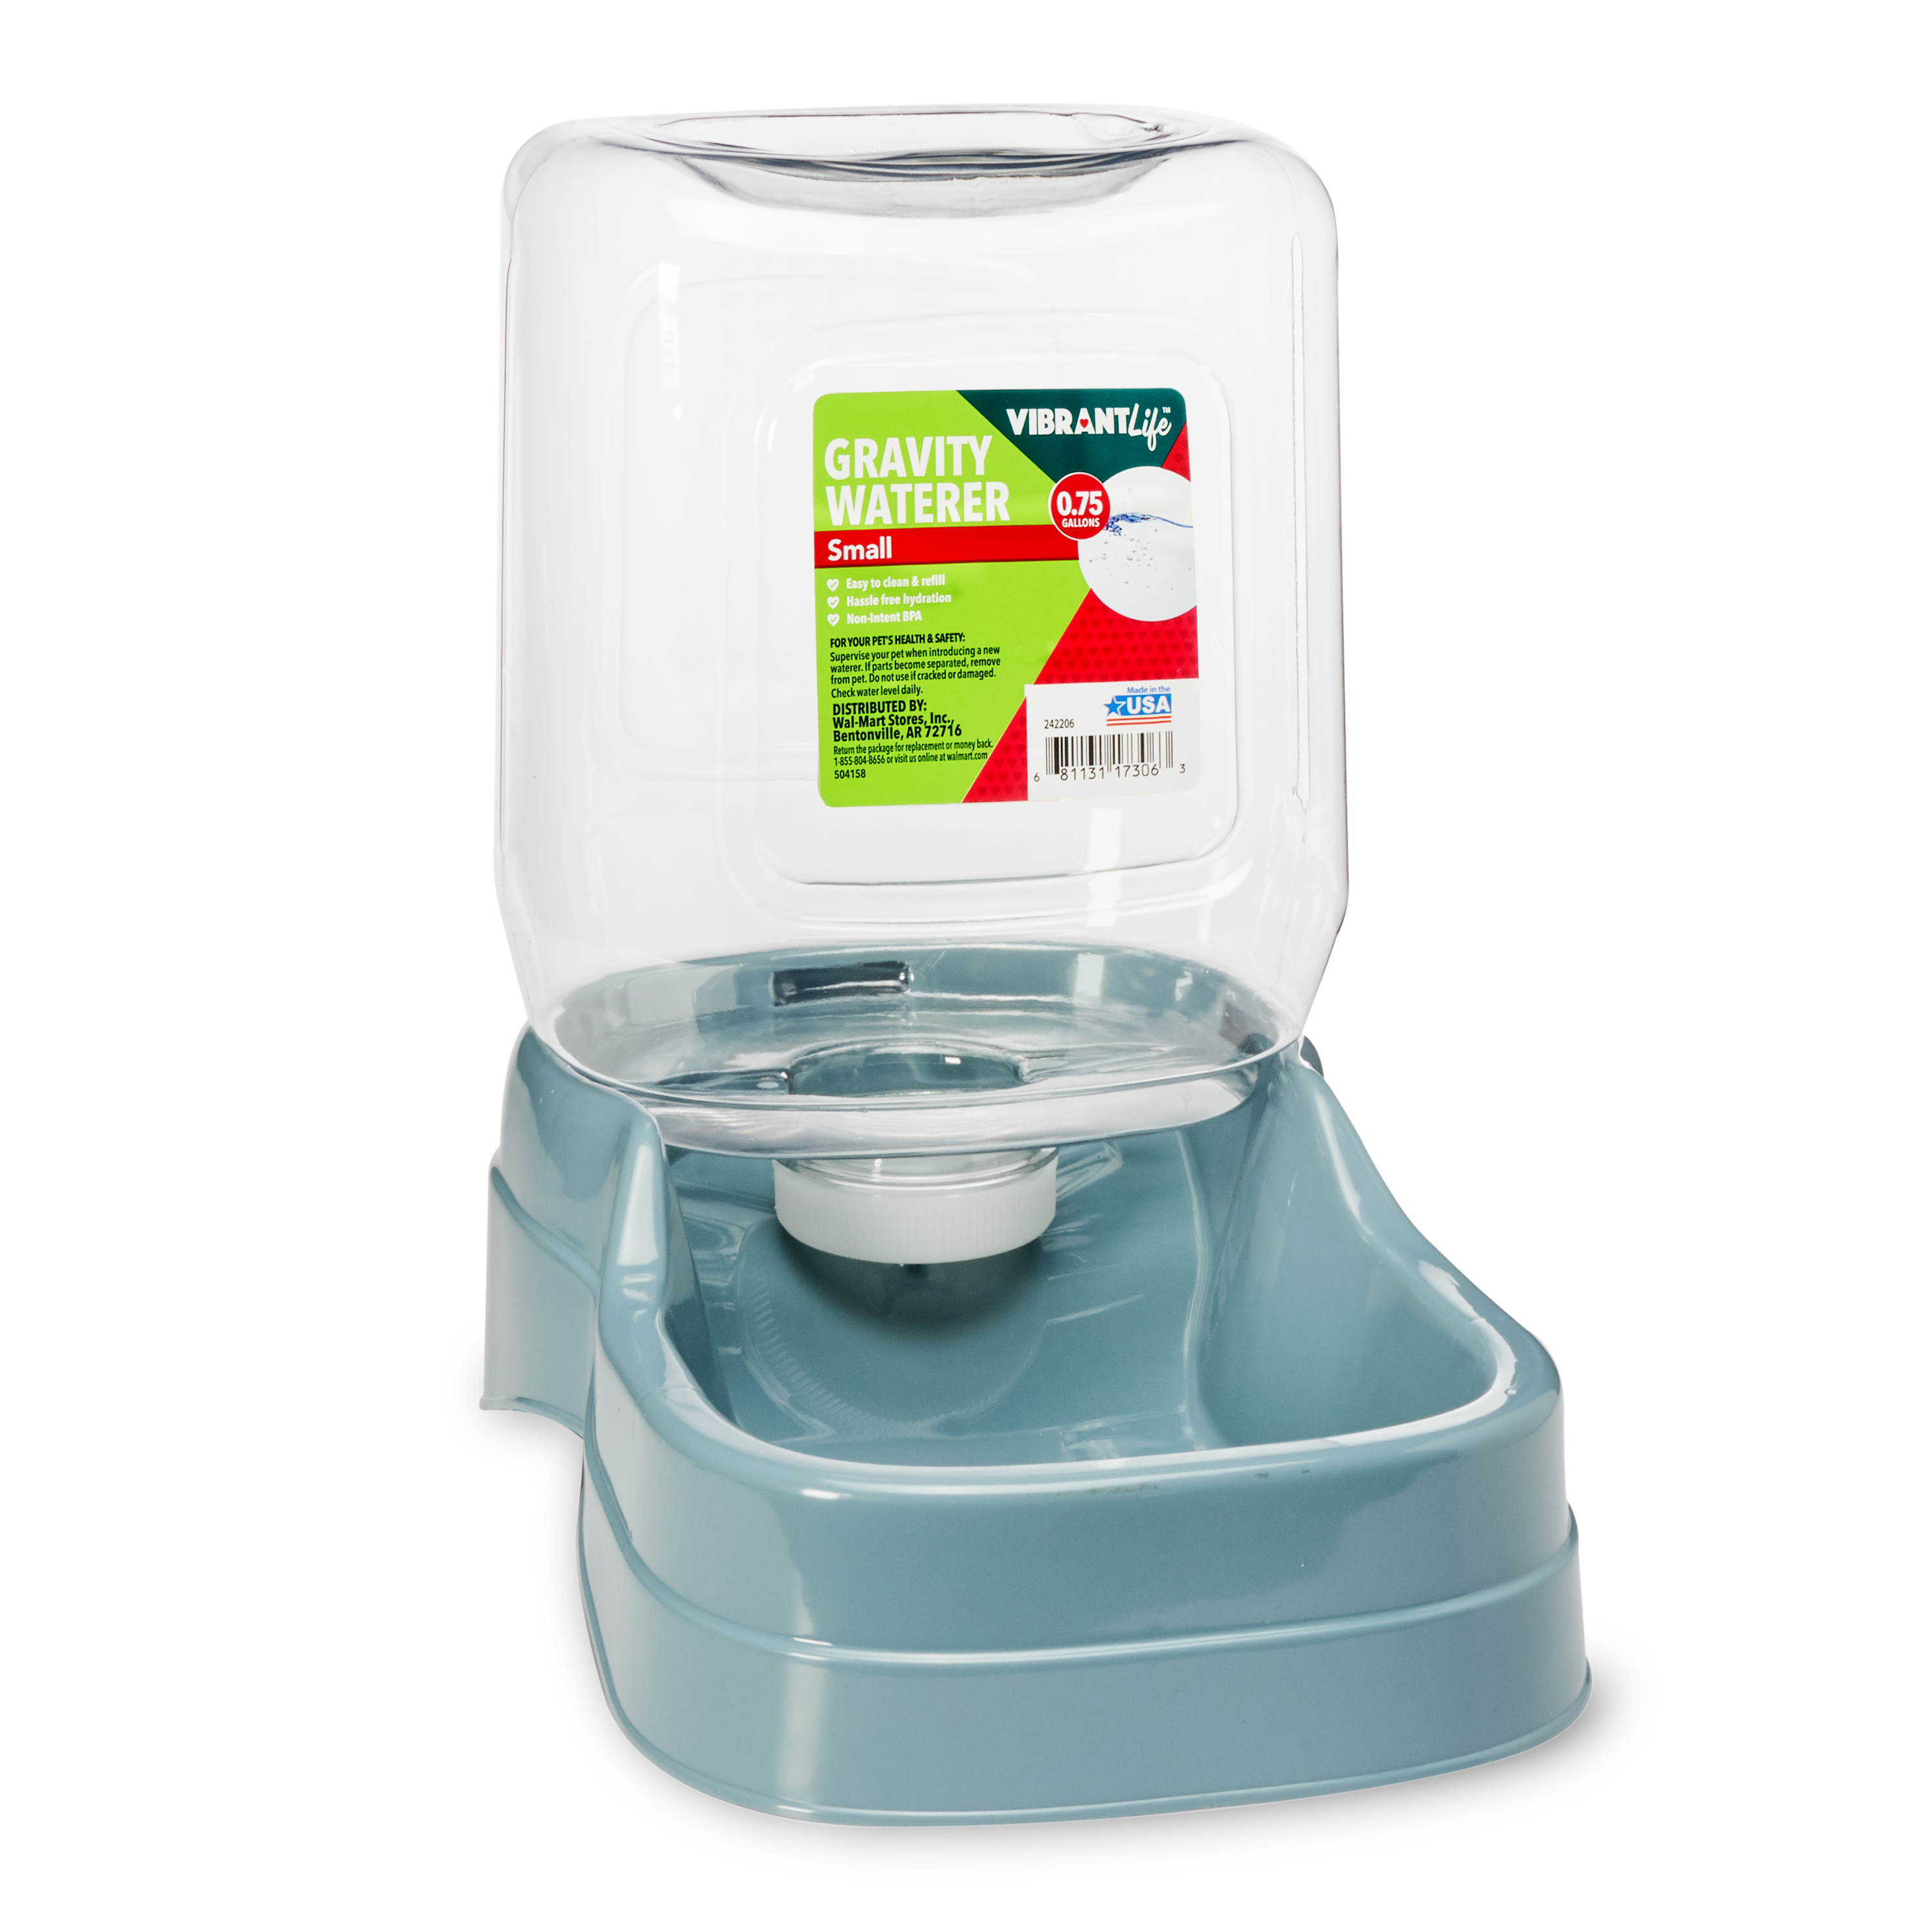 Vibrant Life Gravity Pet Waterer, Small, 0.75 Gal